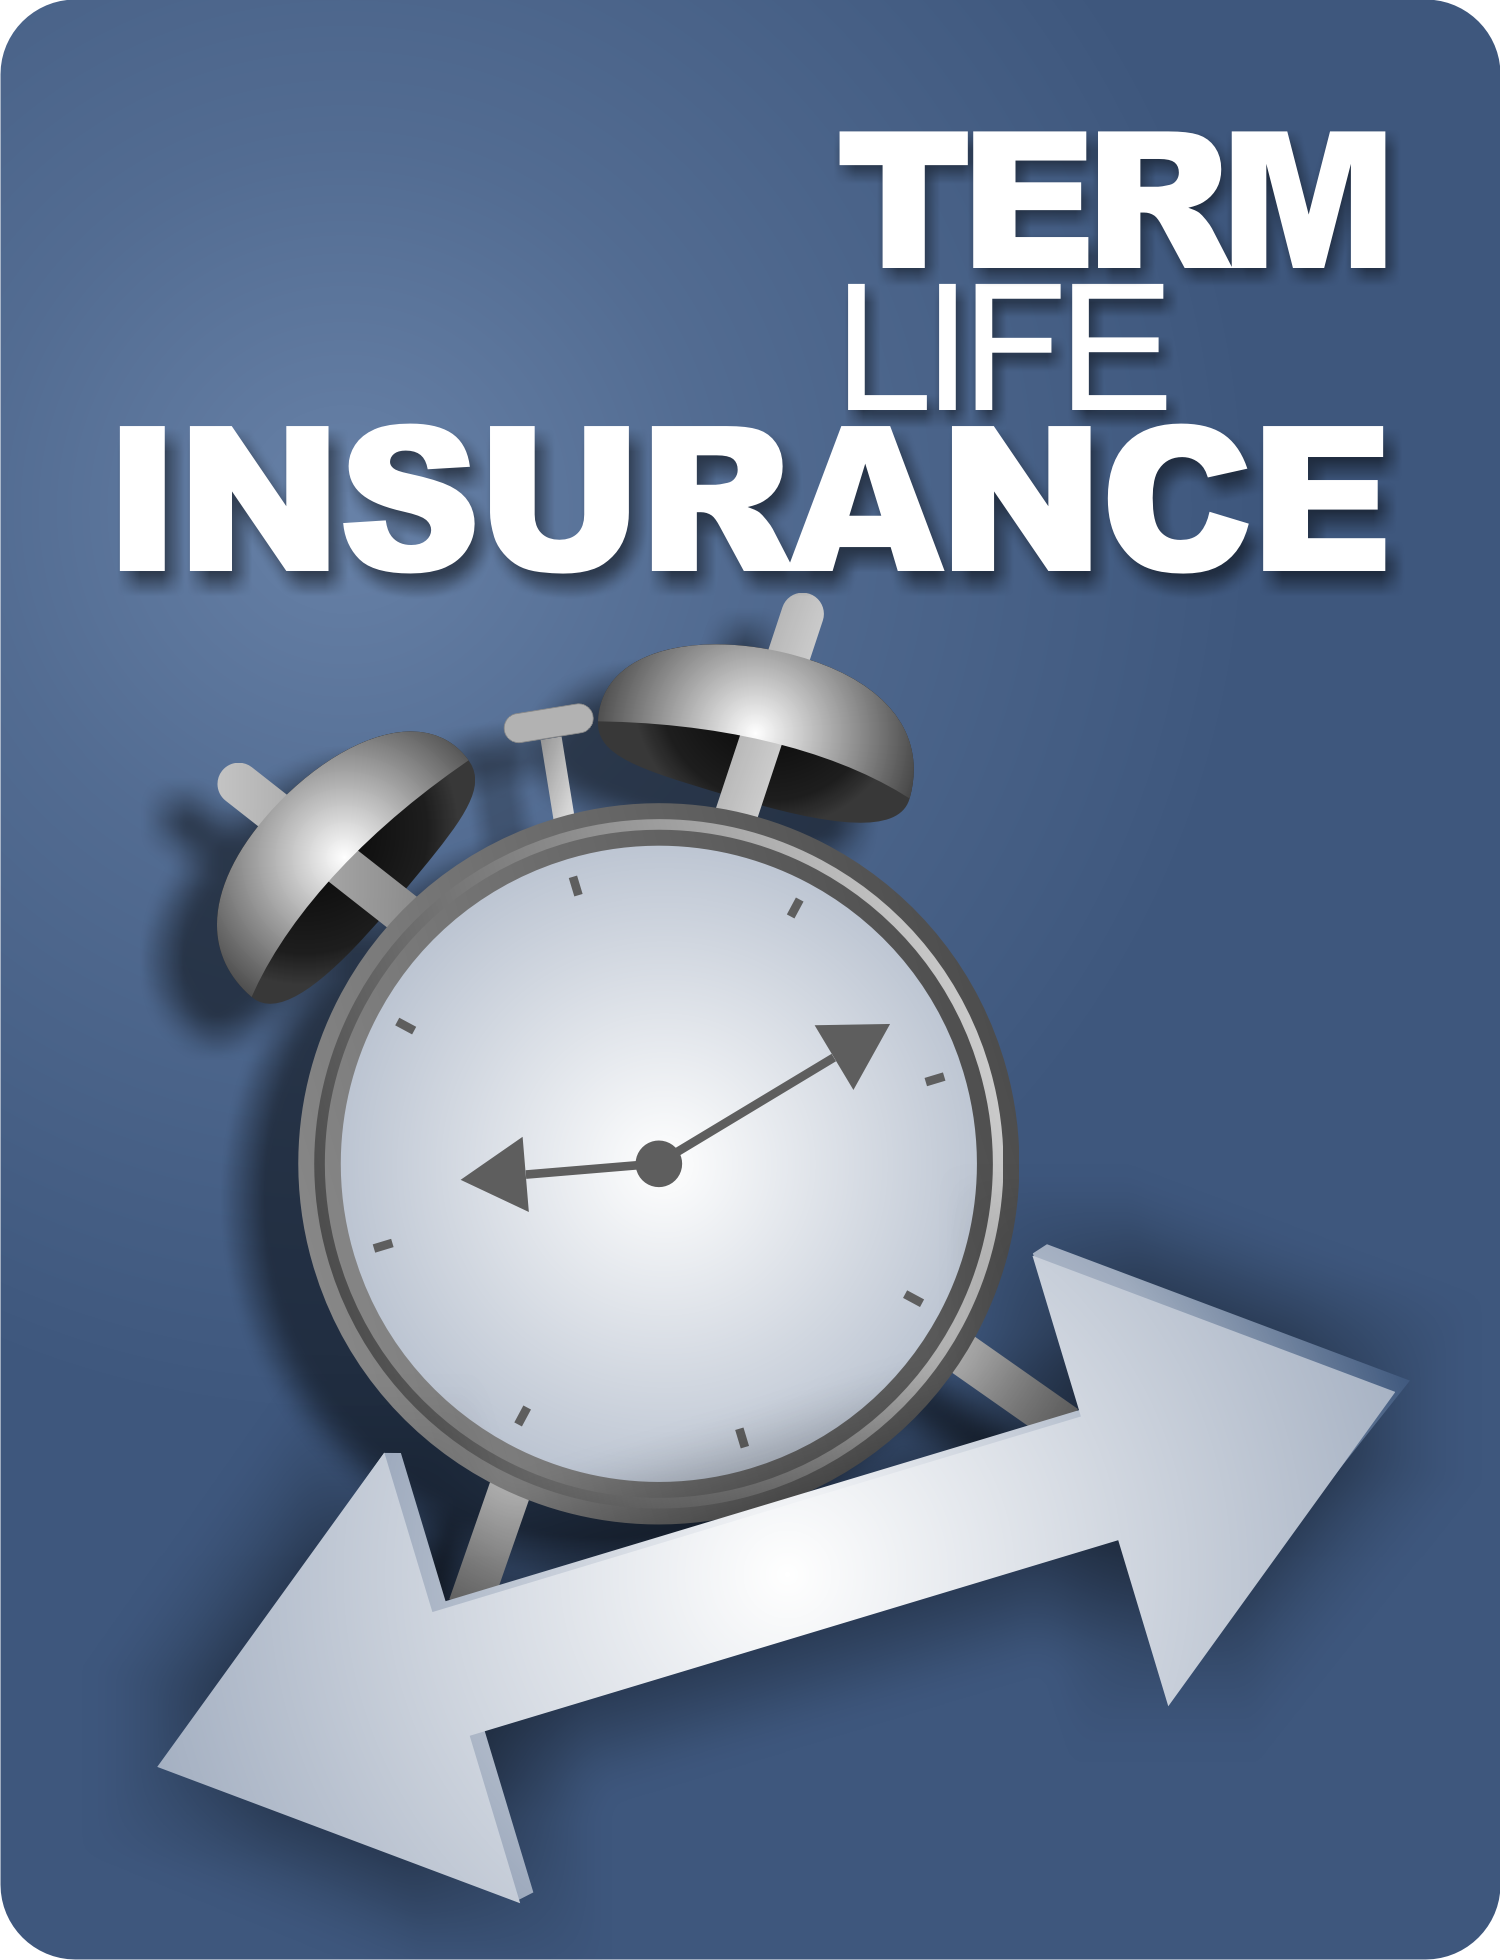 Senior Life Insurance Quotes Online Unique Life Insurance For Seniors Life Insurance Insurance Next Day